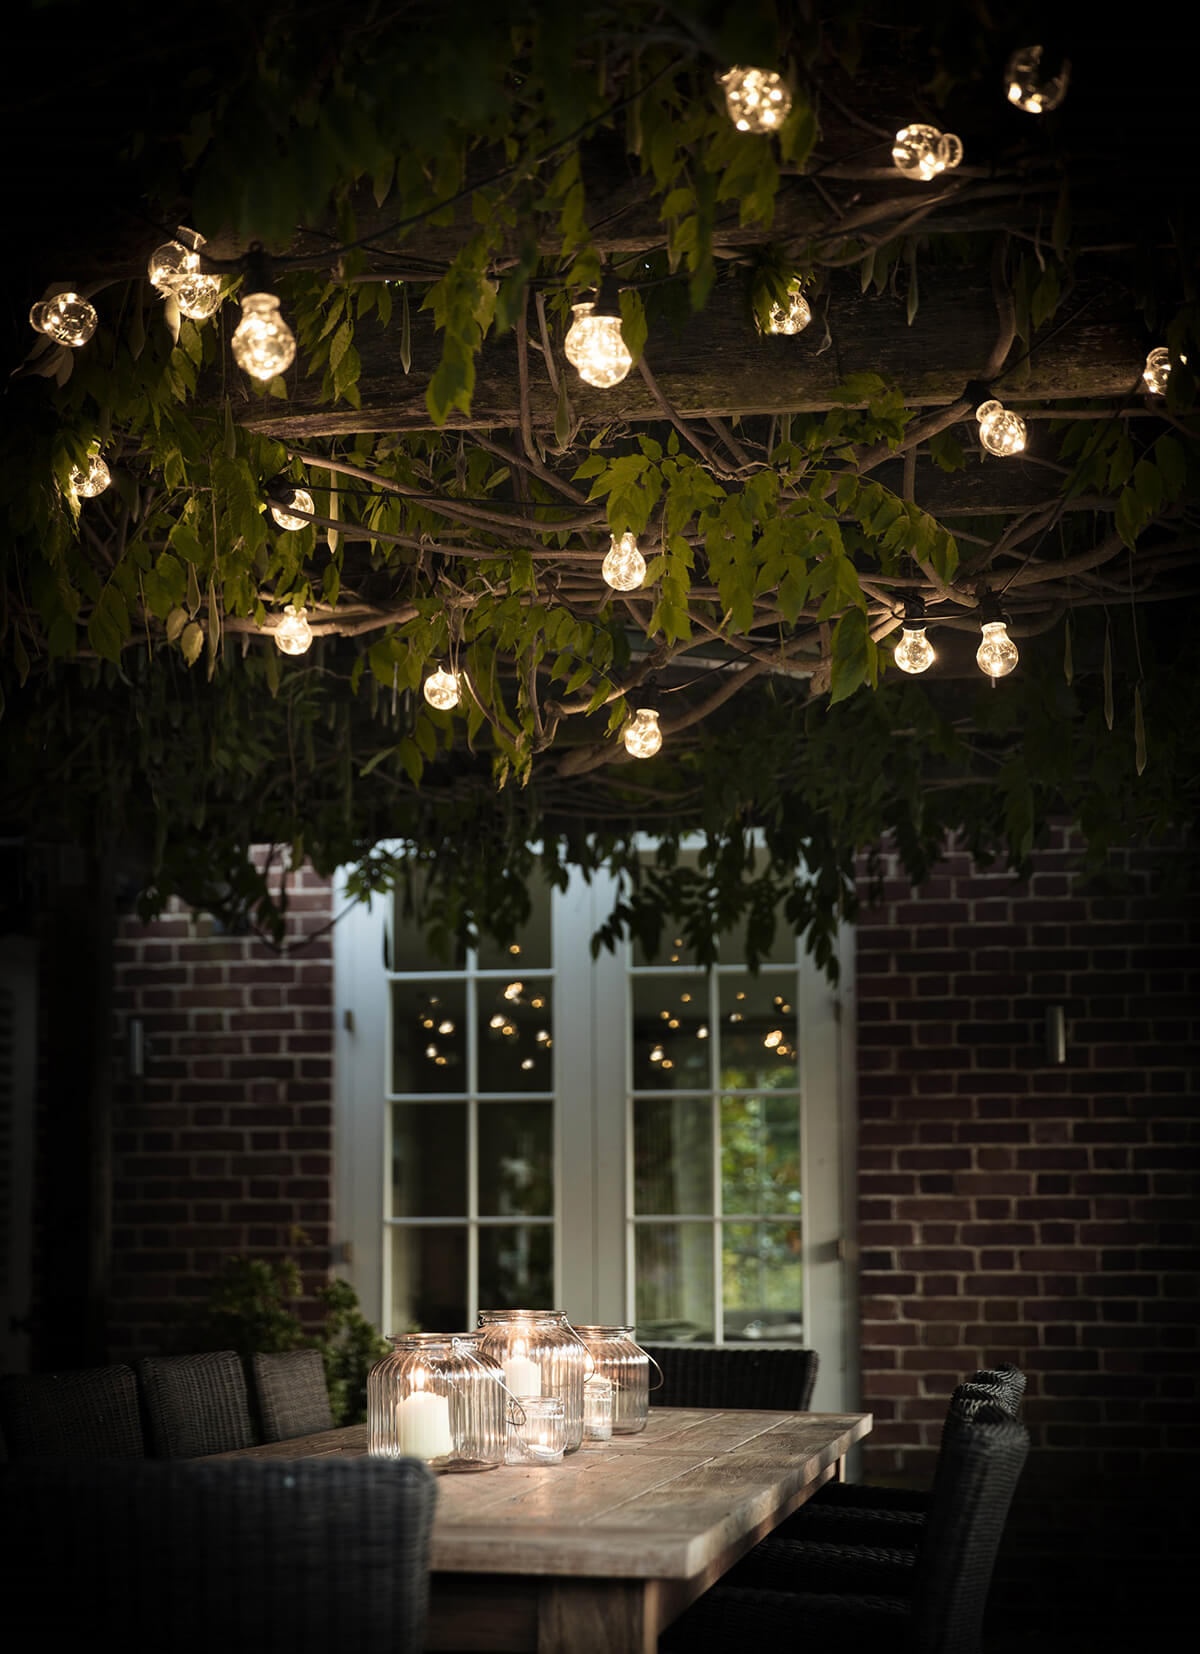 Exposed Globe Lights Over a Tabl